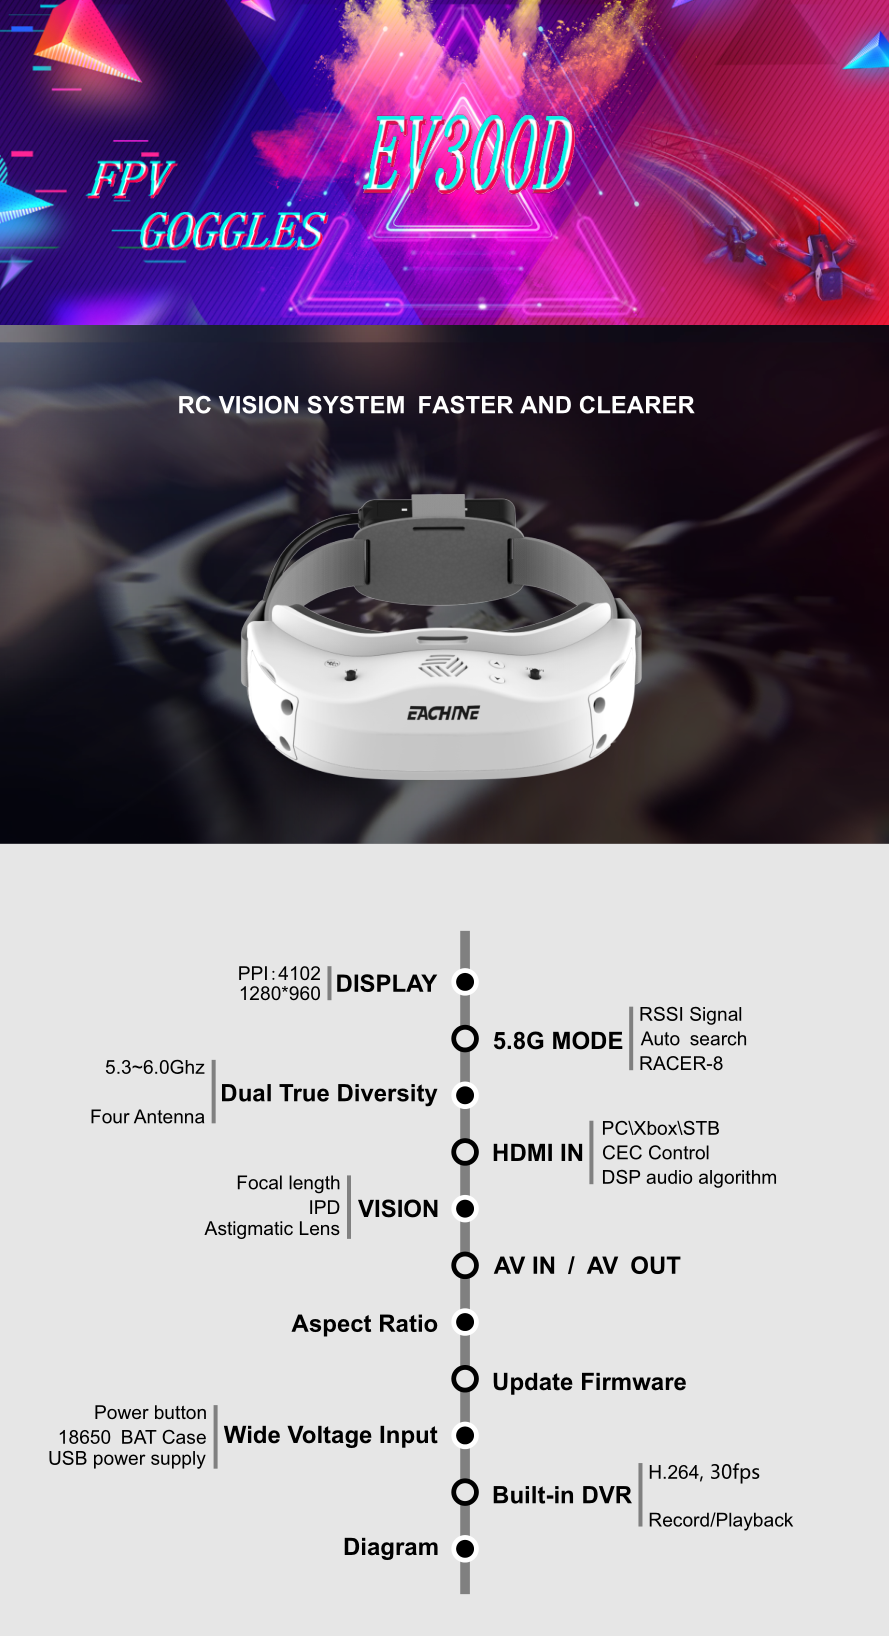 Eachine EV300D 1280*960 5.8G 72CH Dual True Diversity HDMI FPV Goggles Built-in DVR Focal Length Adjustable With Chargeable Battery Case